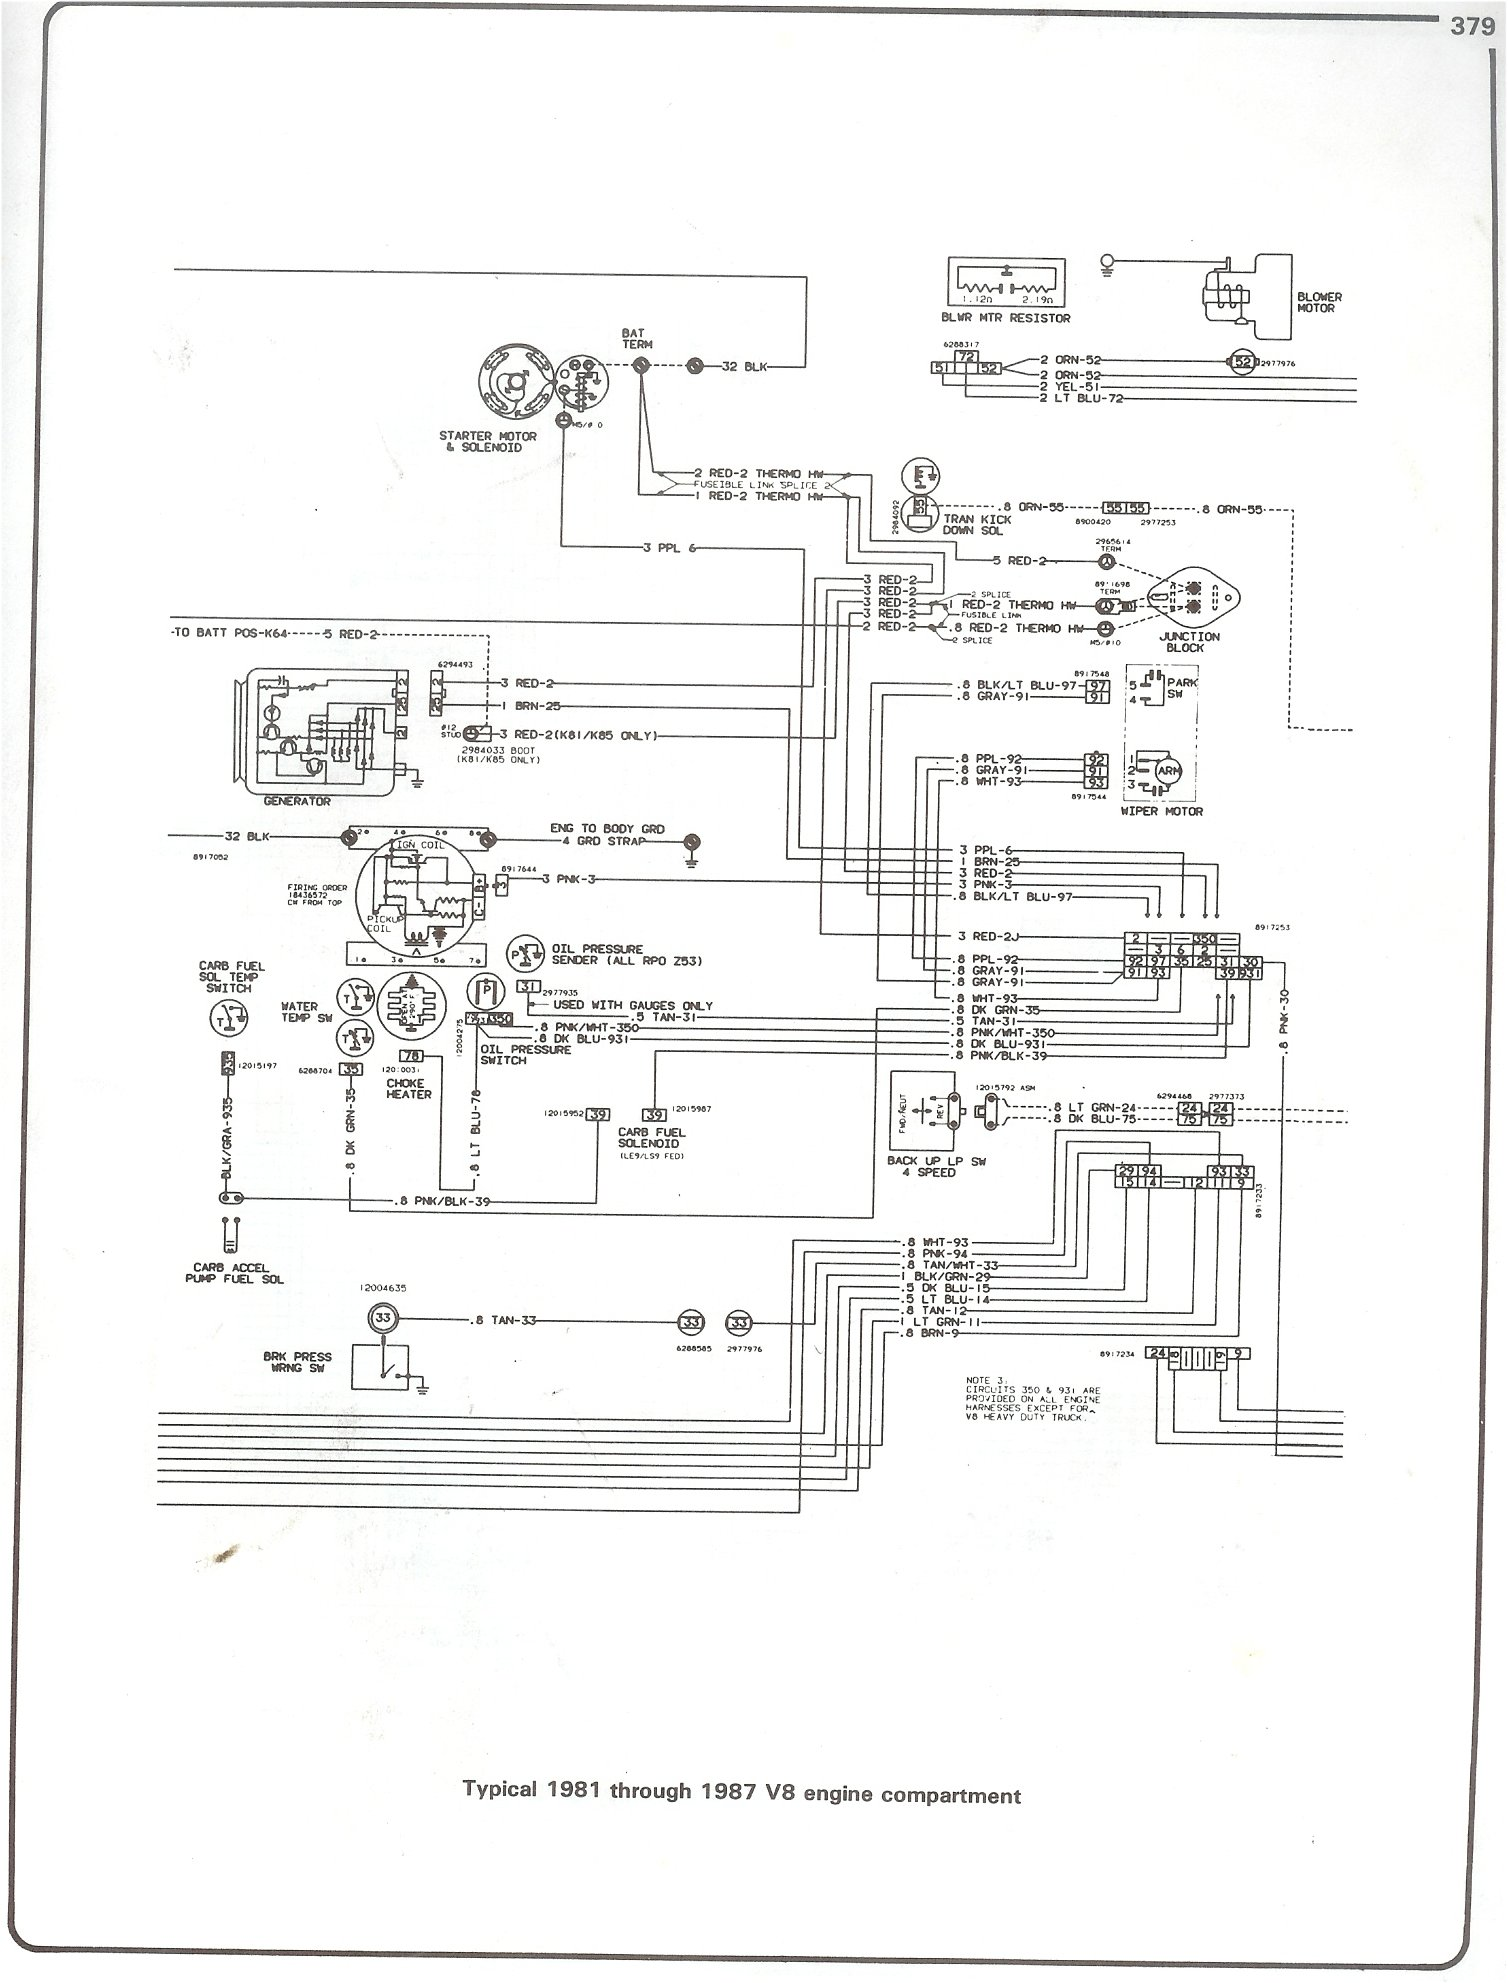 Complete 73 87 Wiring Diagrams 65 Chevy Truck Turn Signal Diagram 81 V8 Engine Compartment